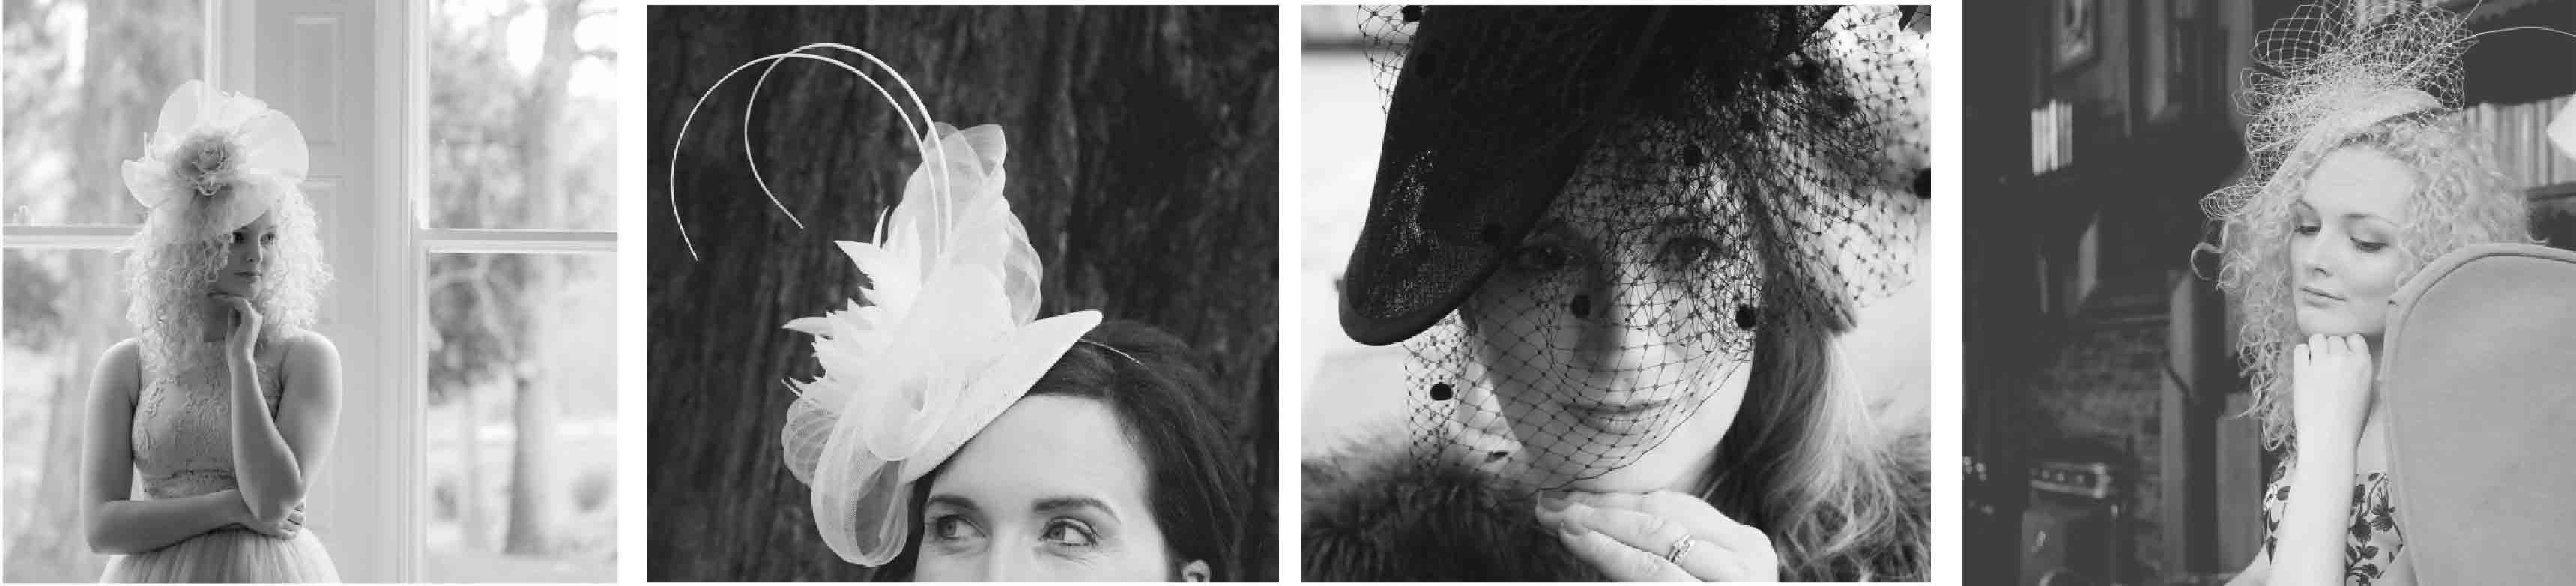 Love Fascinators_Comments